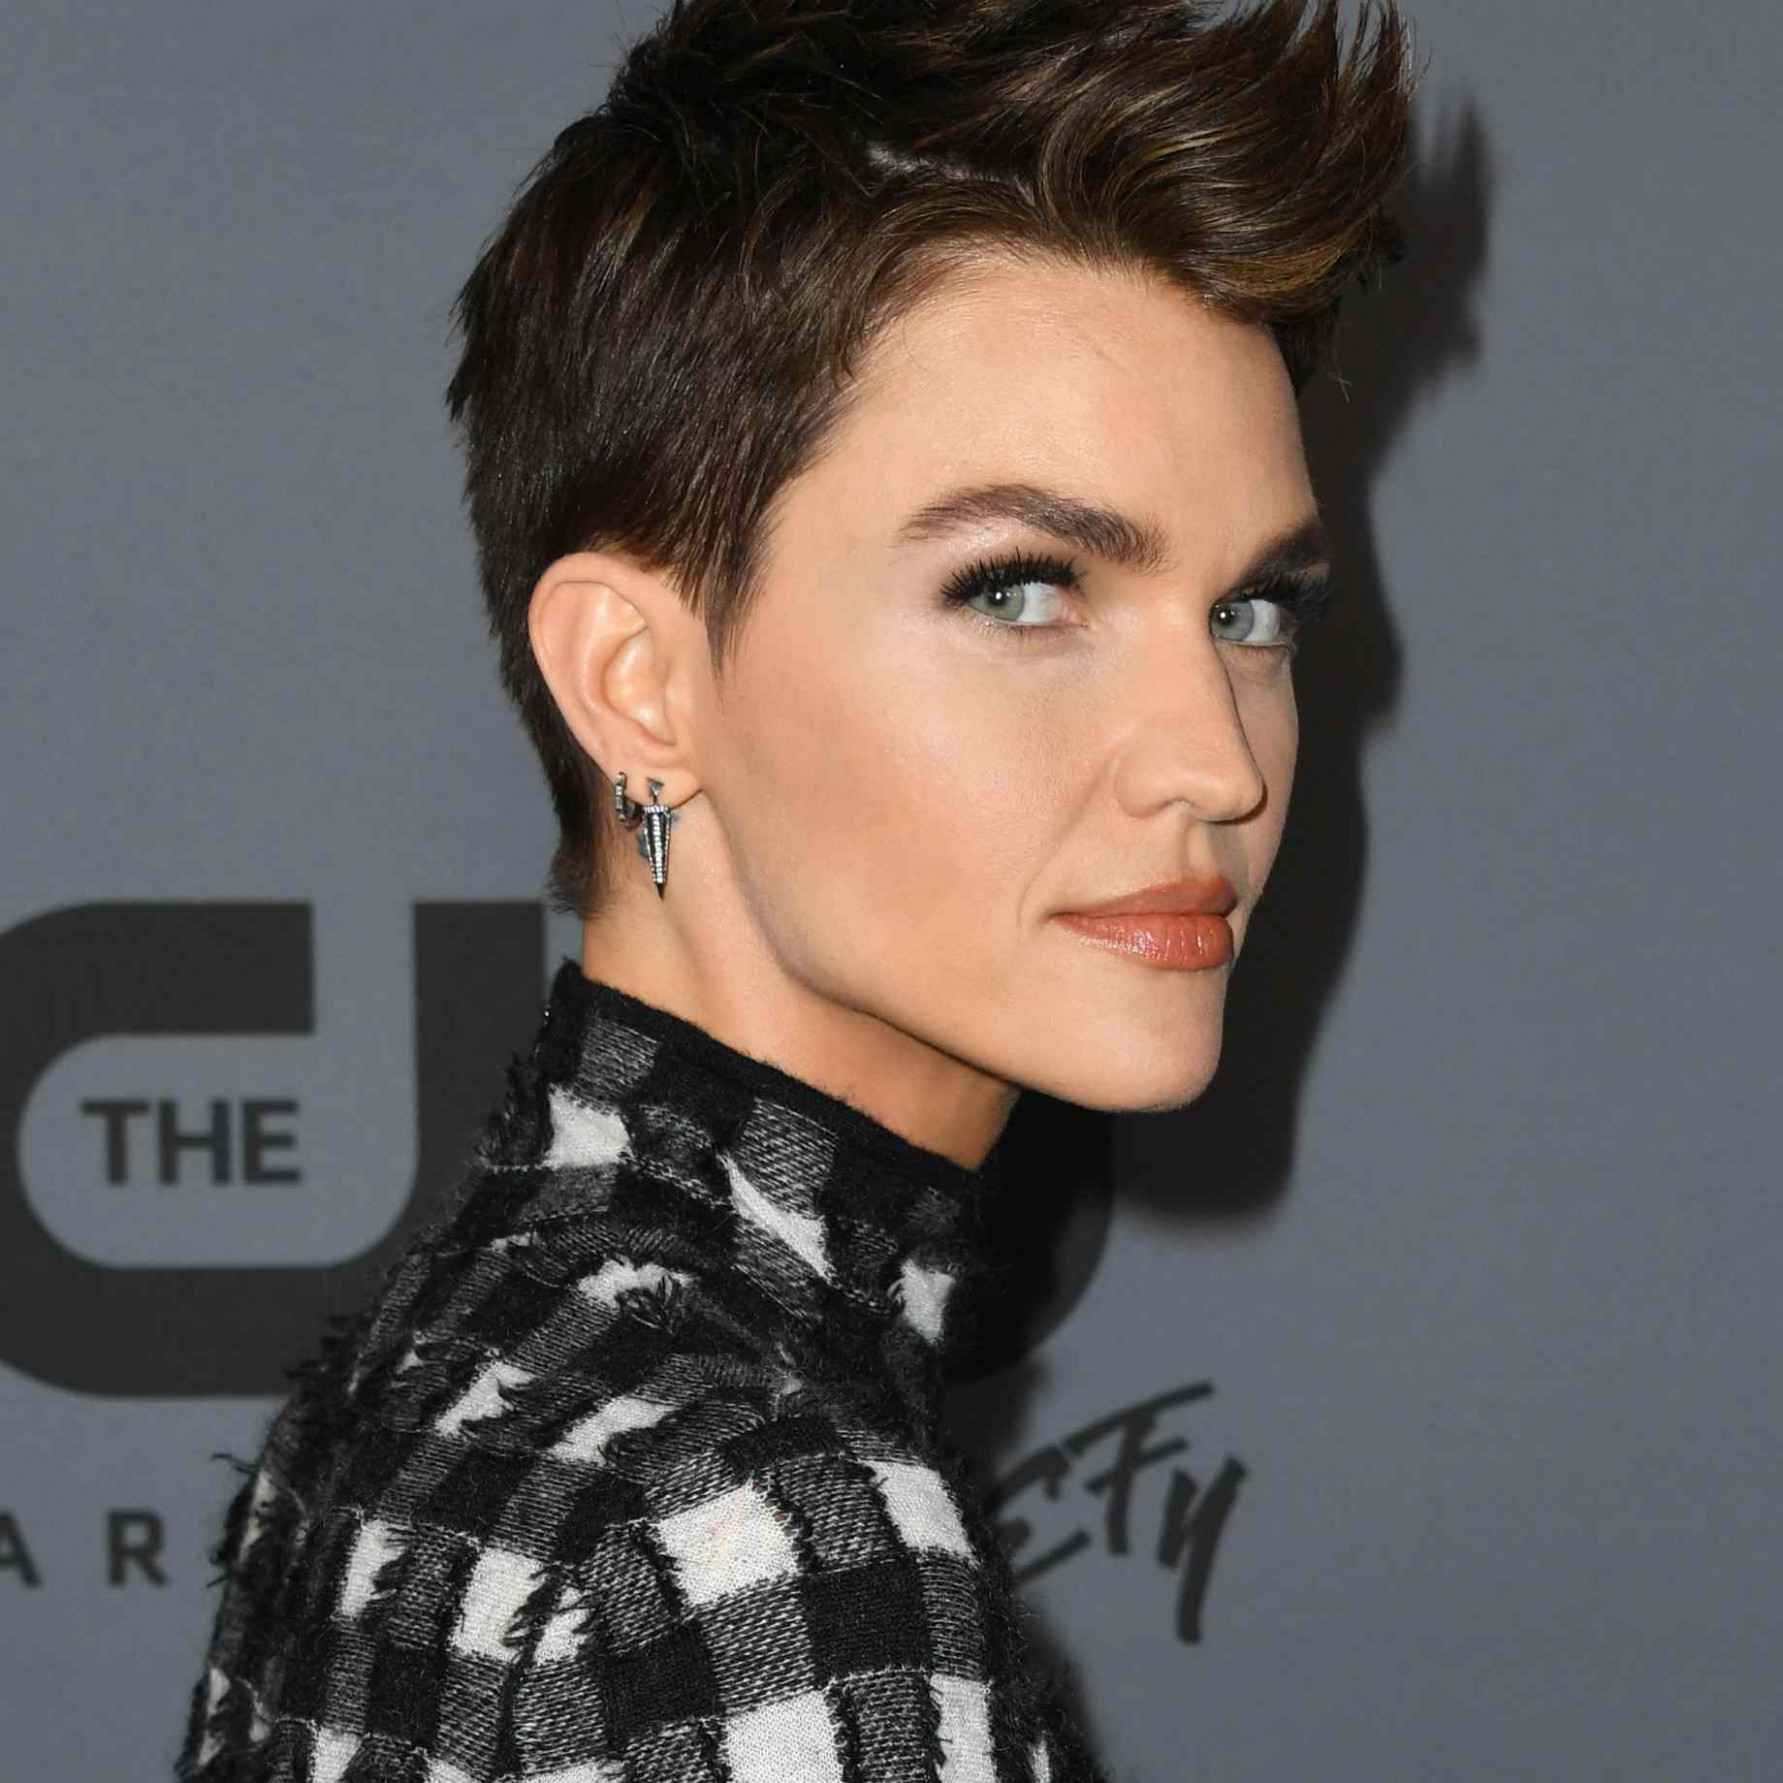 10 Long Pixie Cuts To Try No Matter Your Styling Skill Level Ruby Rose Pixie Cut